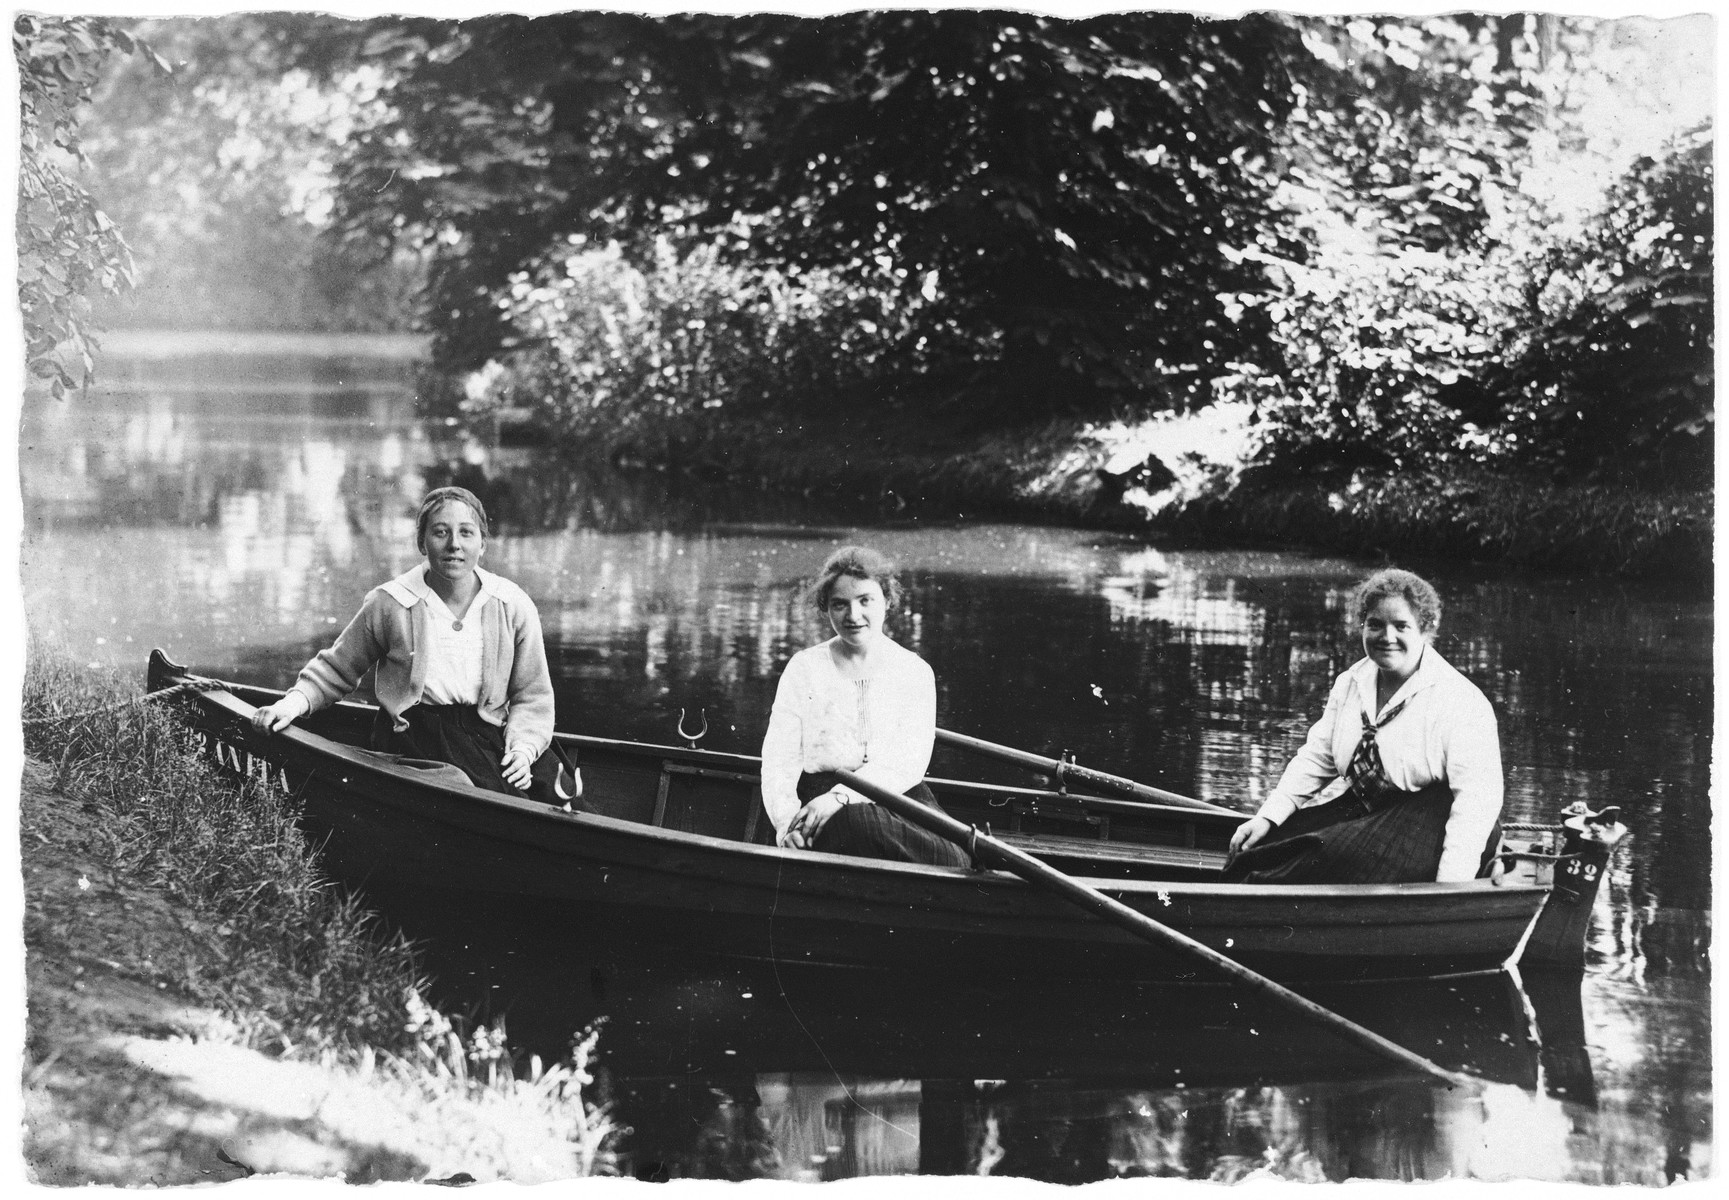 Three young Jewish women sit in a rowboat on a lake or river in Bad Homberg, Germany.  Hannah Feist is pictured on the left [probably with her sisters].